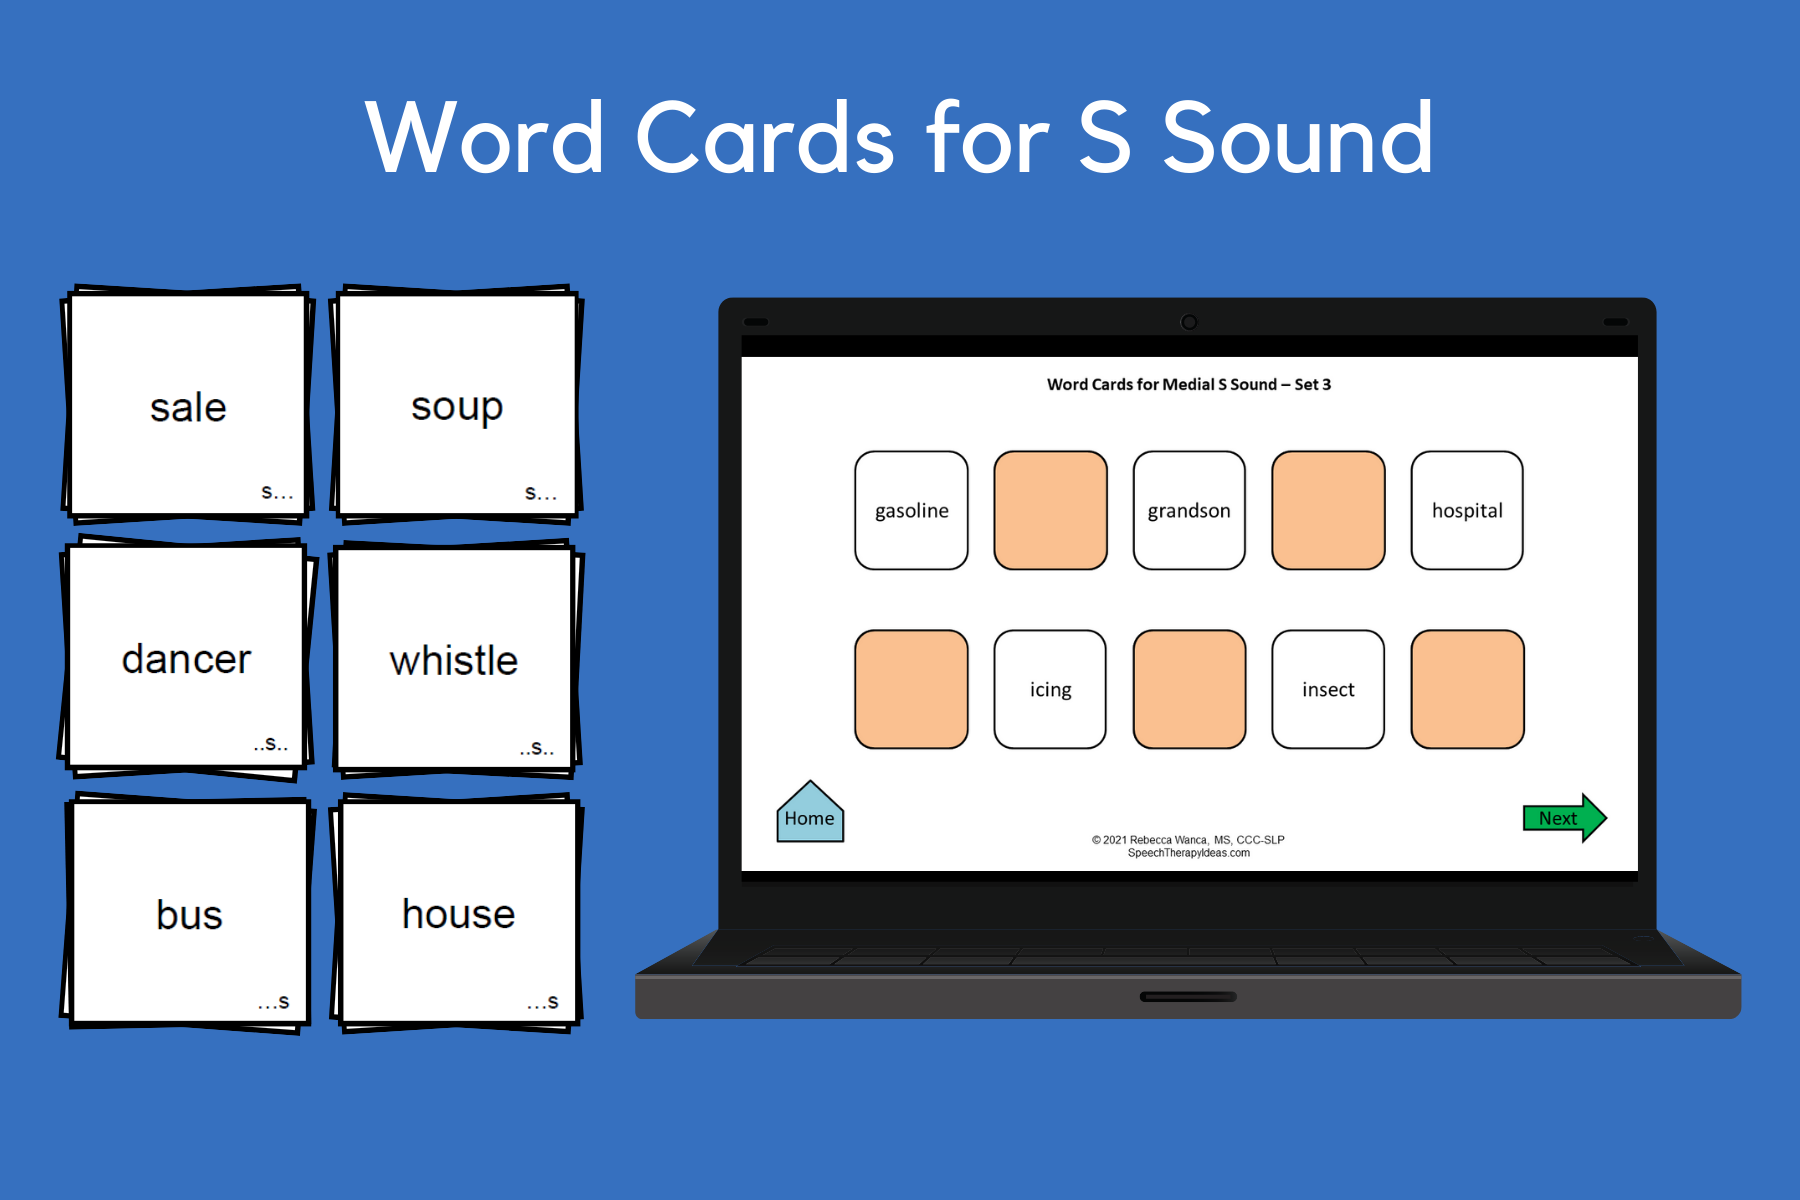 Word Cards for S Sound